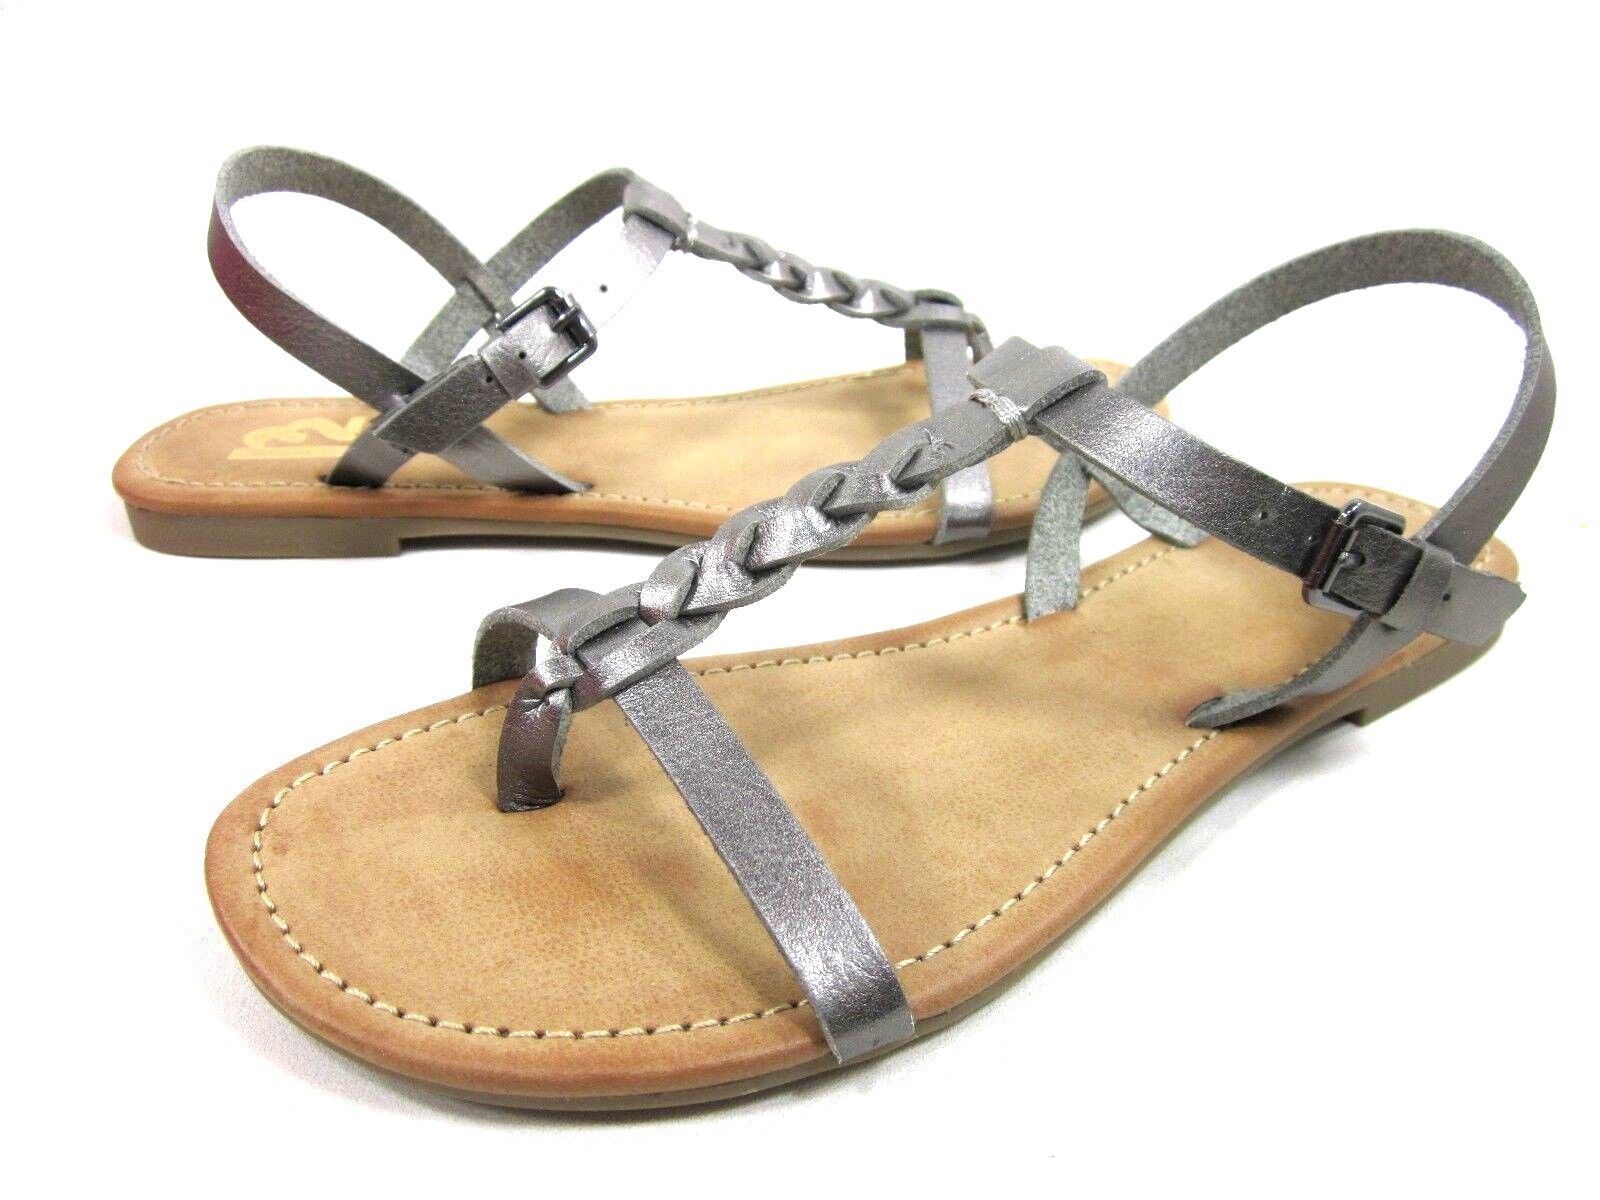 R2 FOOTWEAR FASHION WOMEN'S CAYMAN T-STRAP THONG FASHION FOOTWEAR SANDALS,PEWTER,MEDIUM,NEW e21bbf